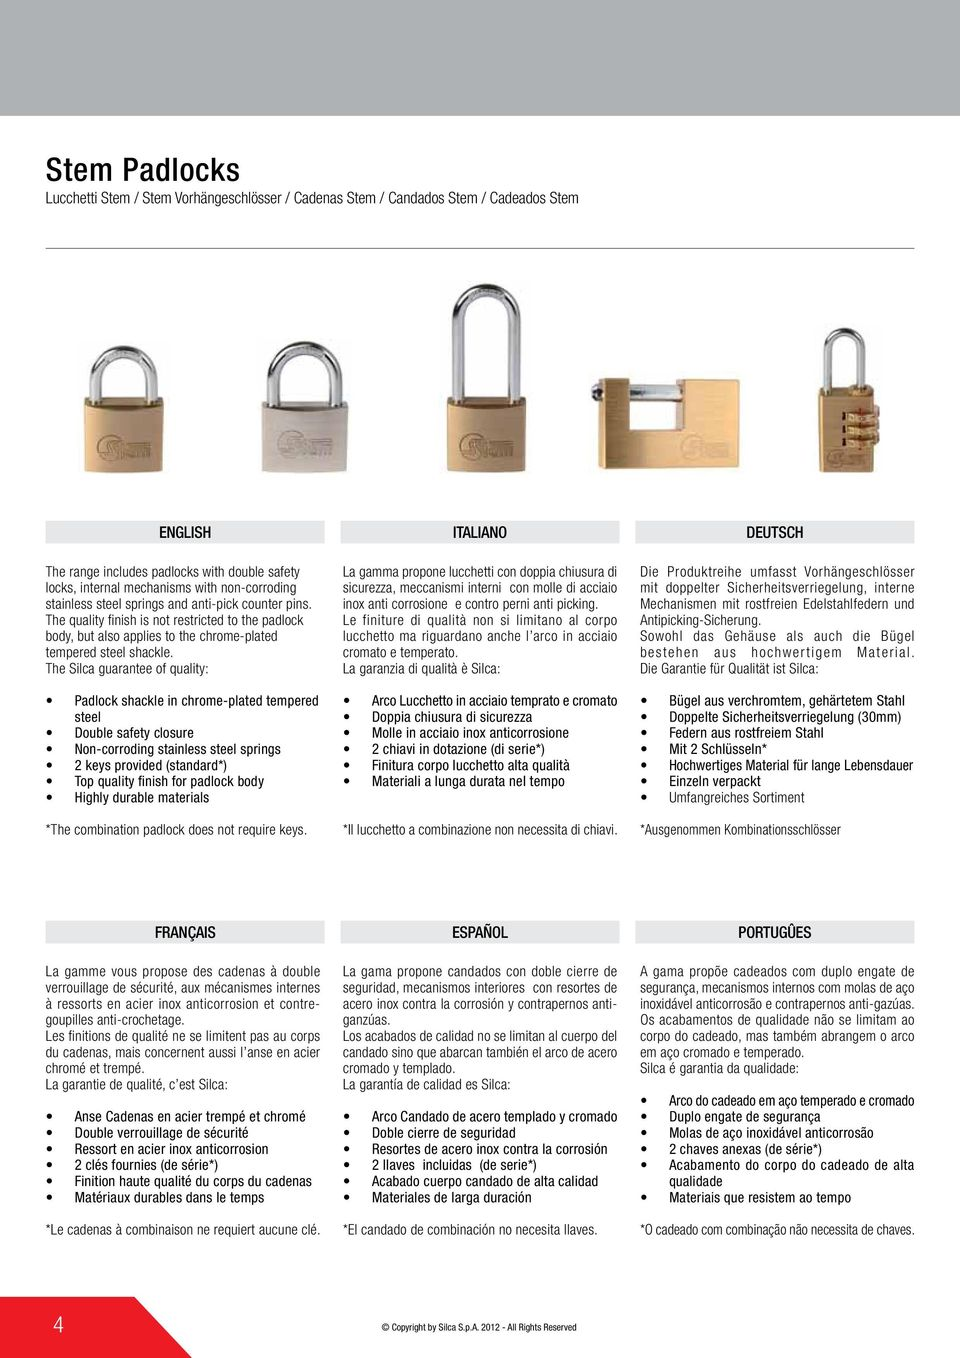 The Silca guarantee of quality: Padlock shackle in chrome-plated tempered steel Double safety closure Non-corroding stainless steel springs 2 keys provided (standard*) *The combination padlock does